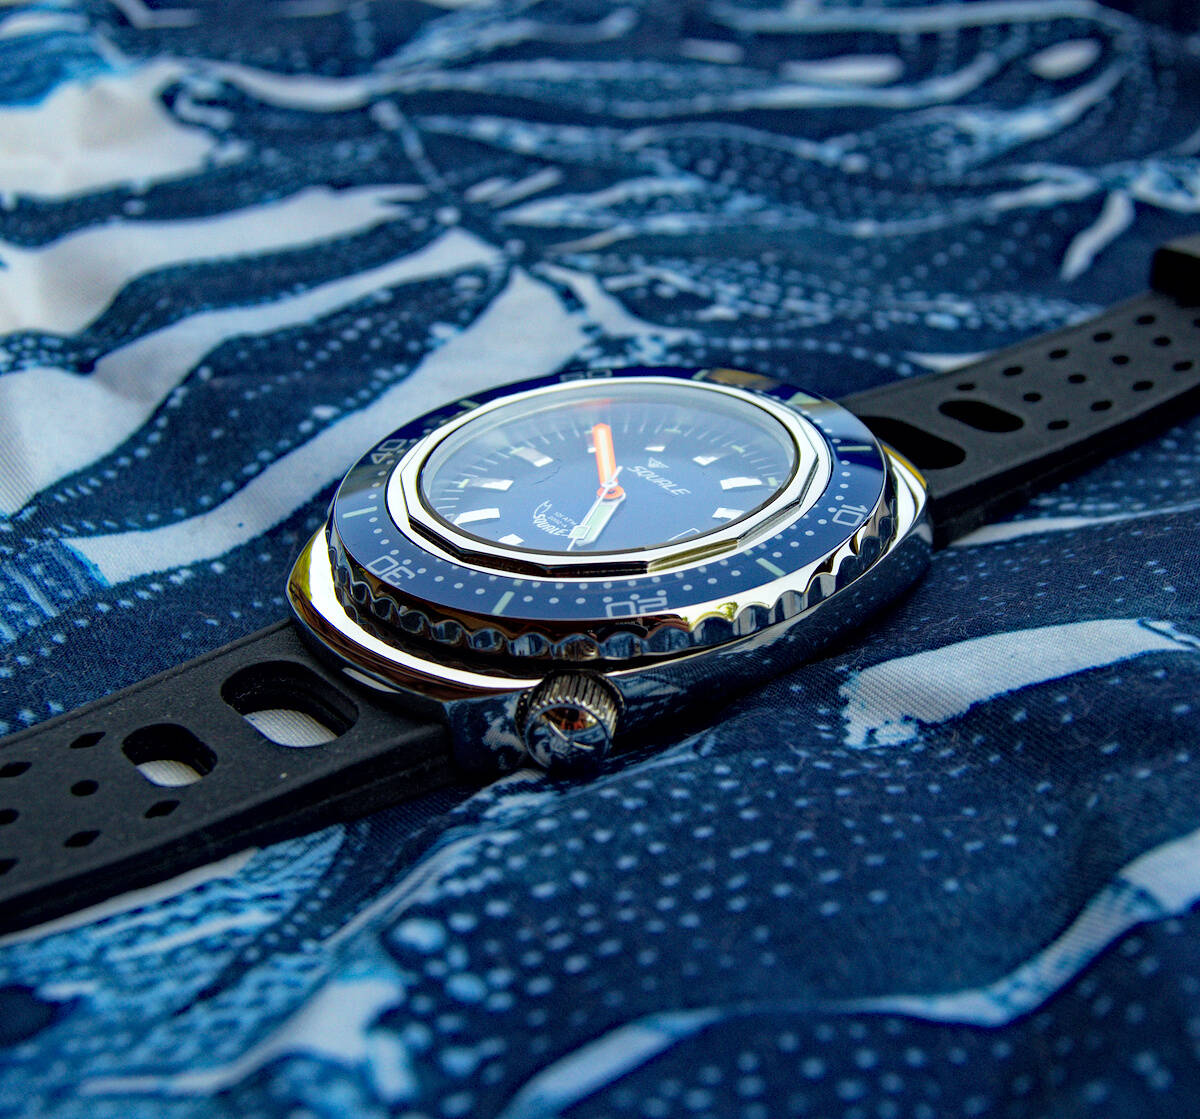 Squale 101 atmos 2002 Professional Dive Watch - Blue Polished